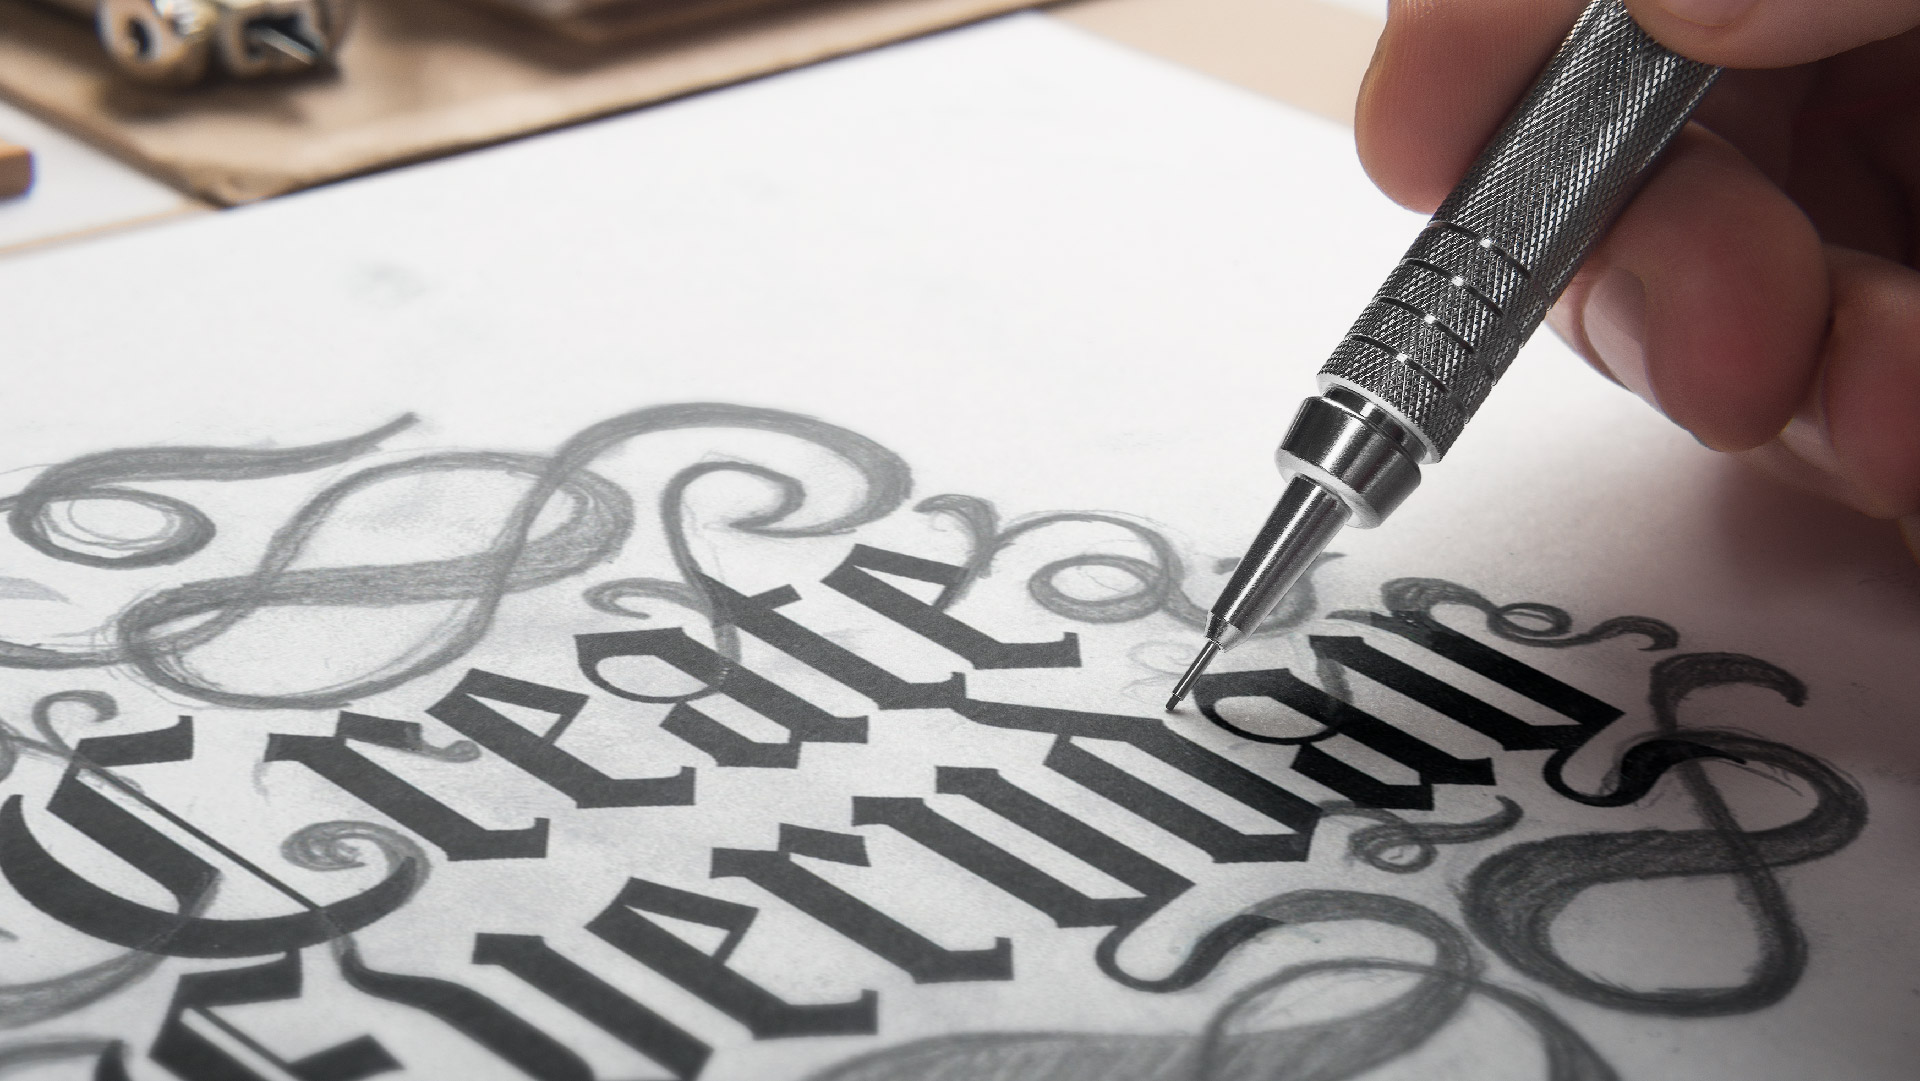 create every day hand drawn design concept